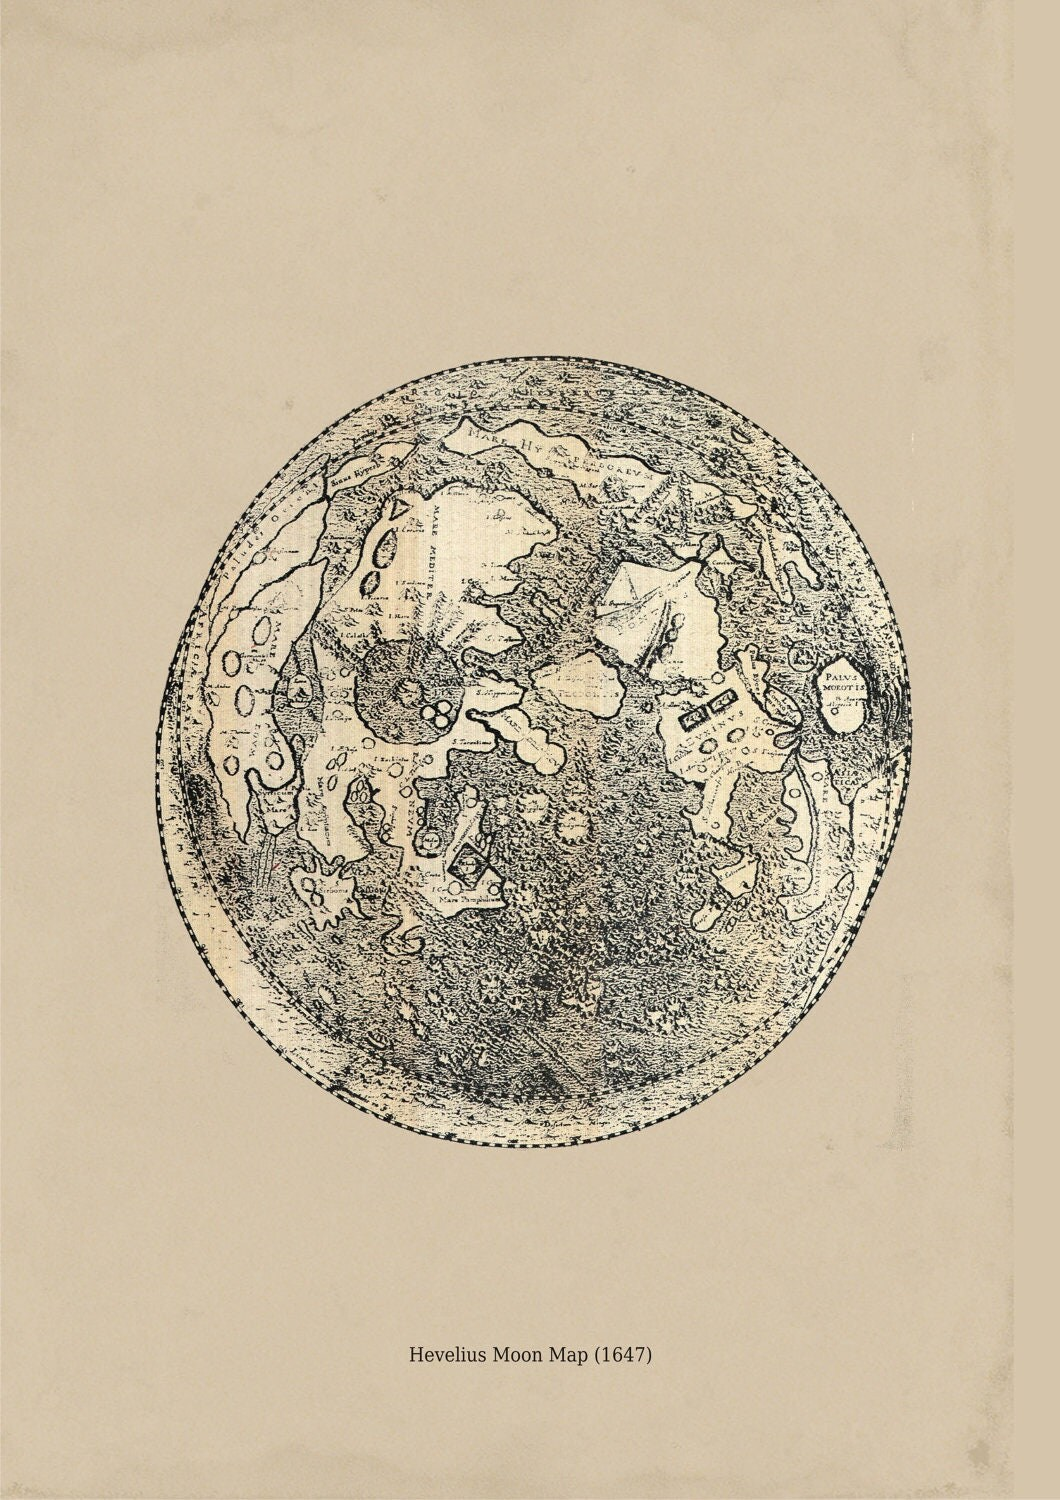 Vintage Astronomy Print - Pics about space